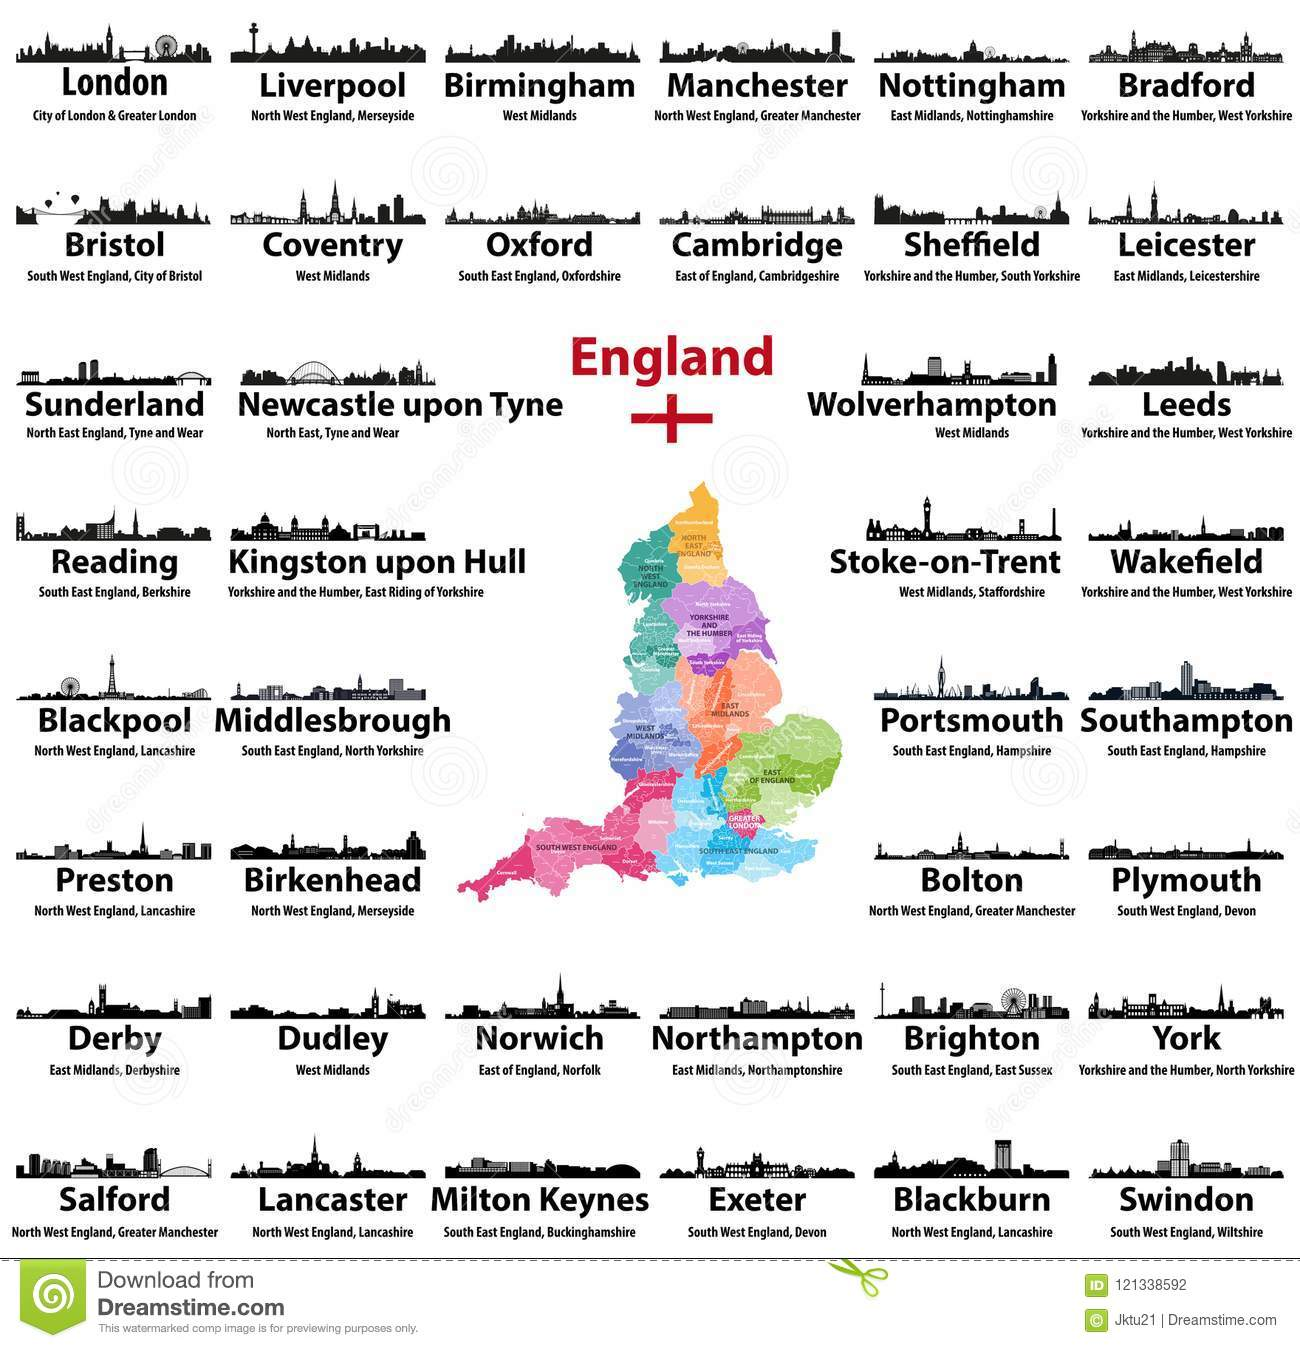 Map Of England Counties And Cities.England Cities Skylines Icons With Names Of City Region And